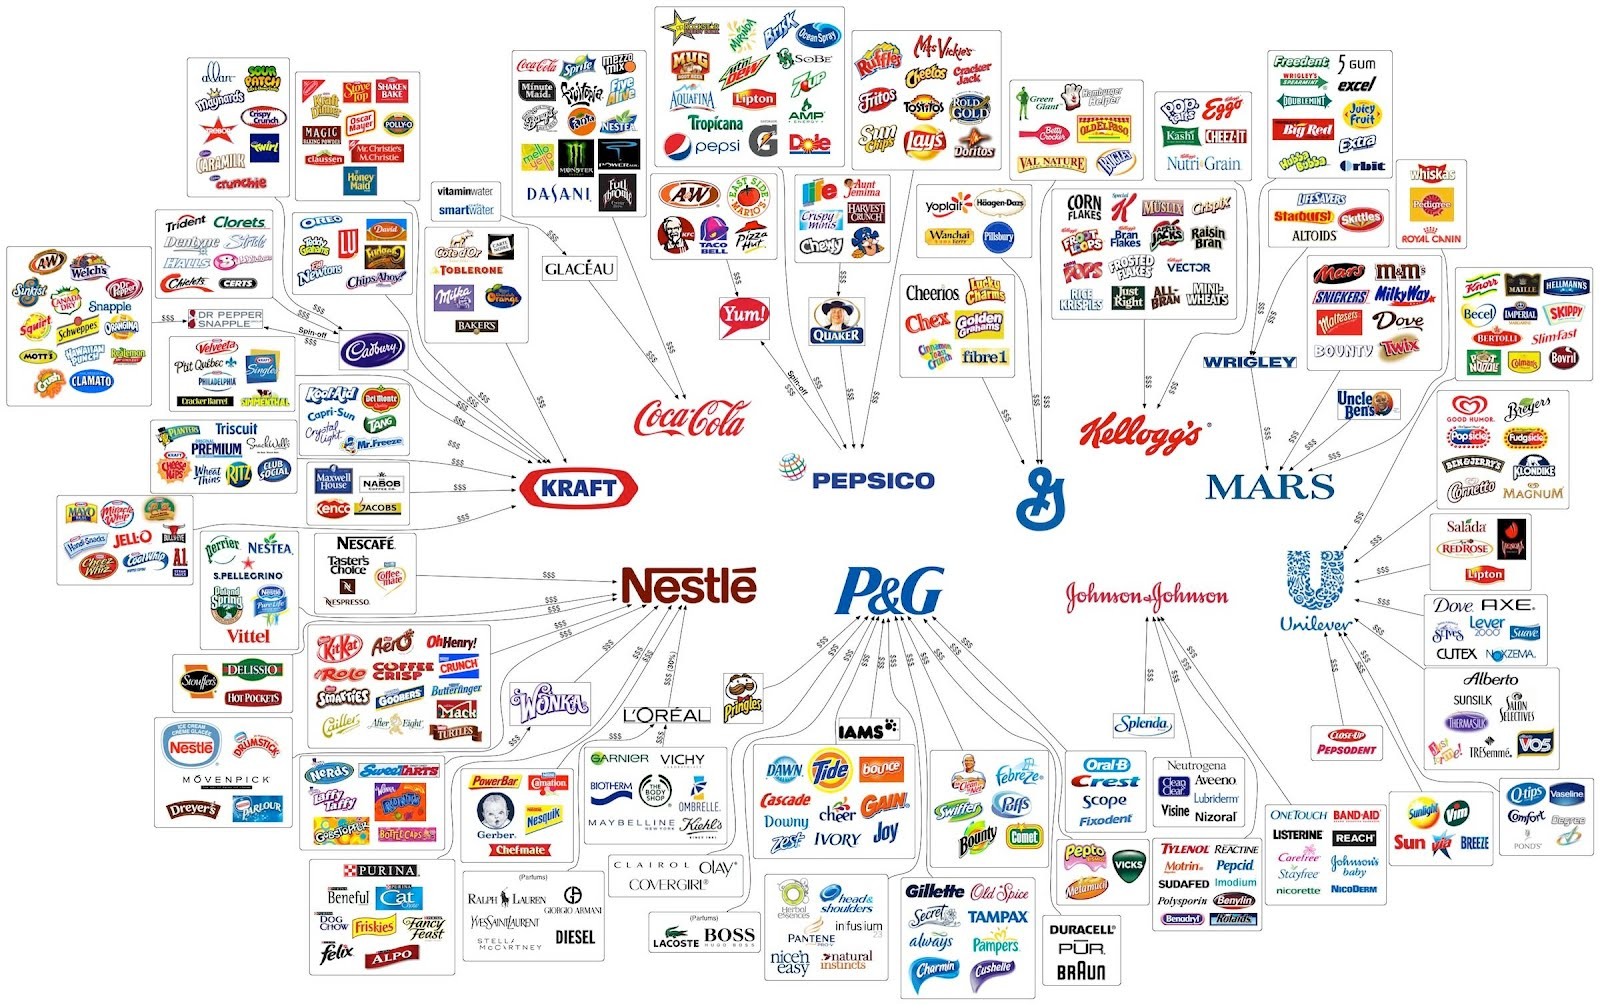 The-Illusion-Of-Brand-Choice-infographic